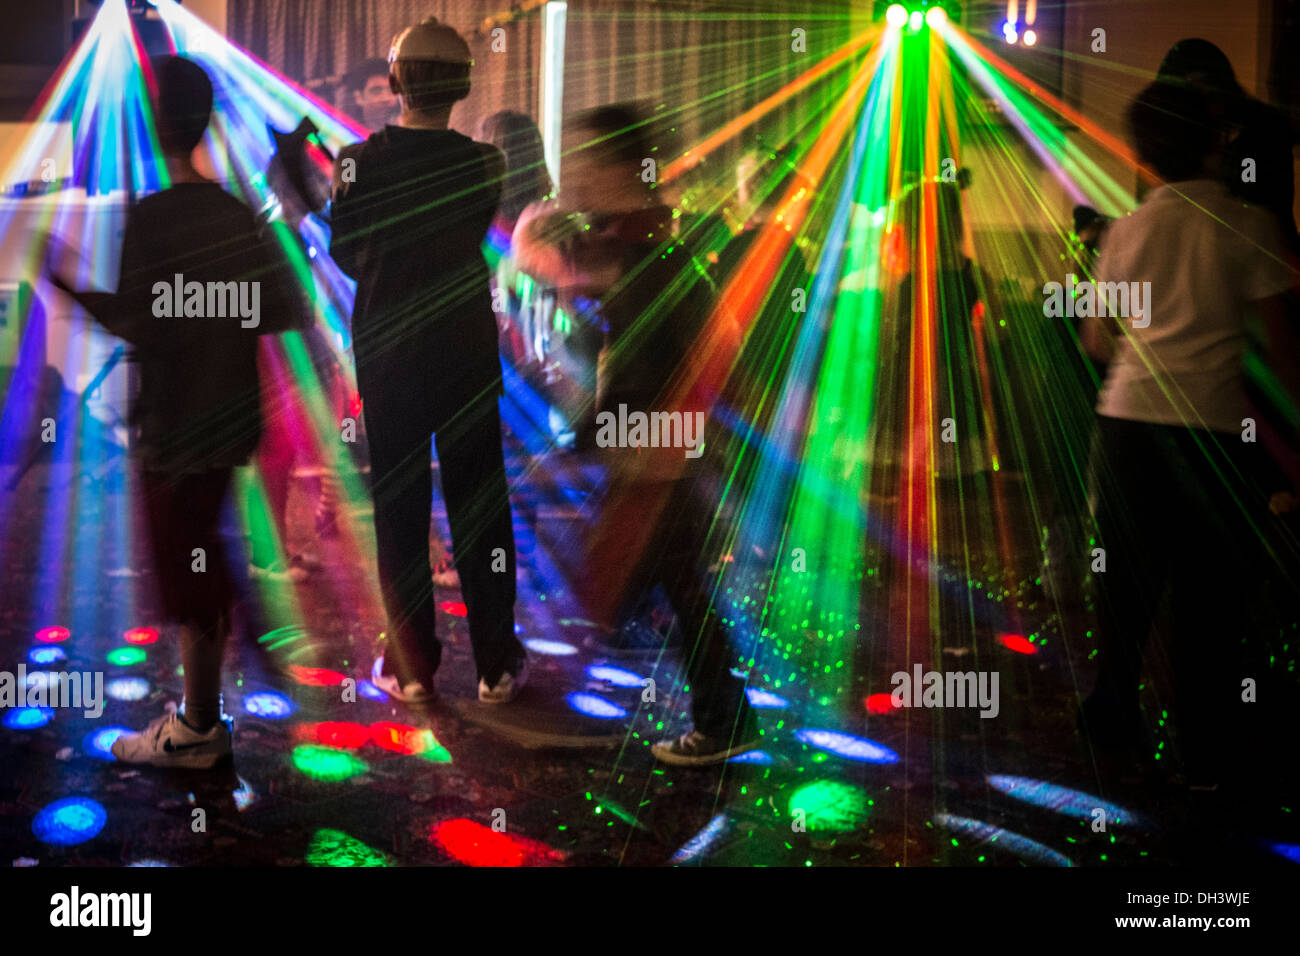 disco lights stock photos disco lights stock images alamy